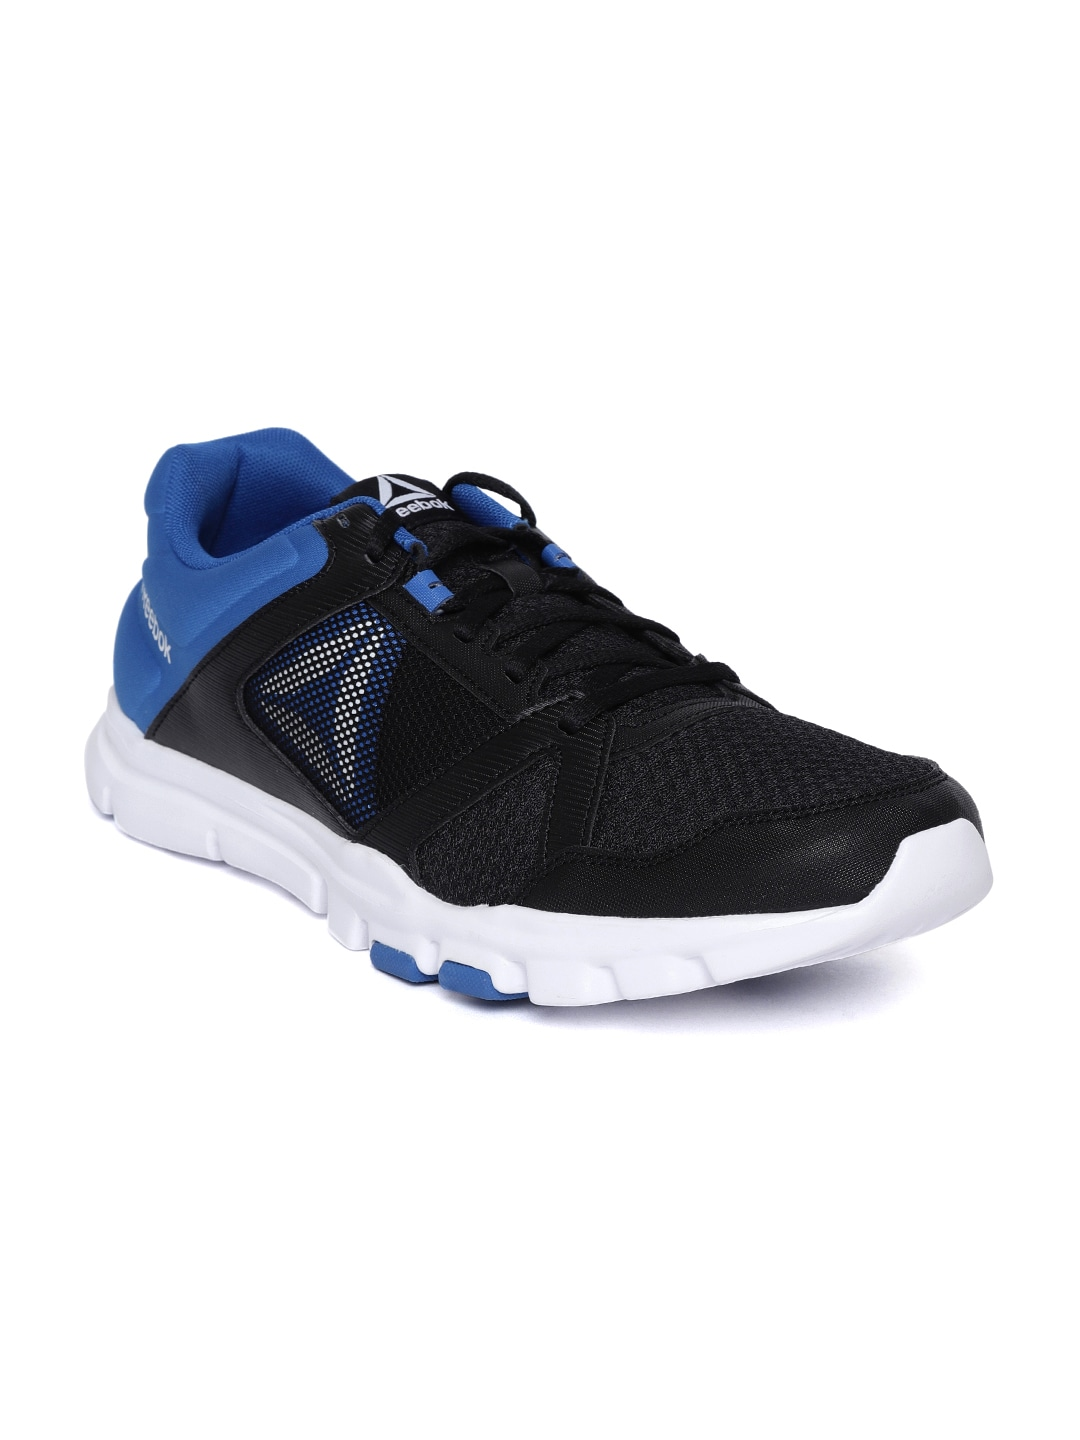 ba8bc564e80cb2 Men s Reebok Sports Shoes - Buy Reebok Sports Shoes for Men Online in India